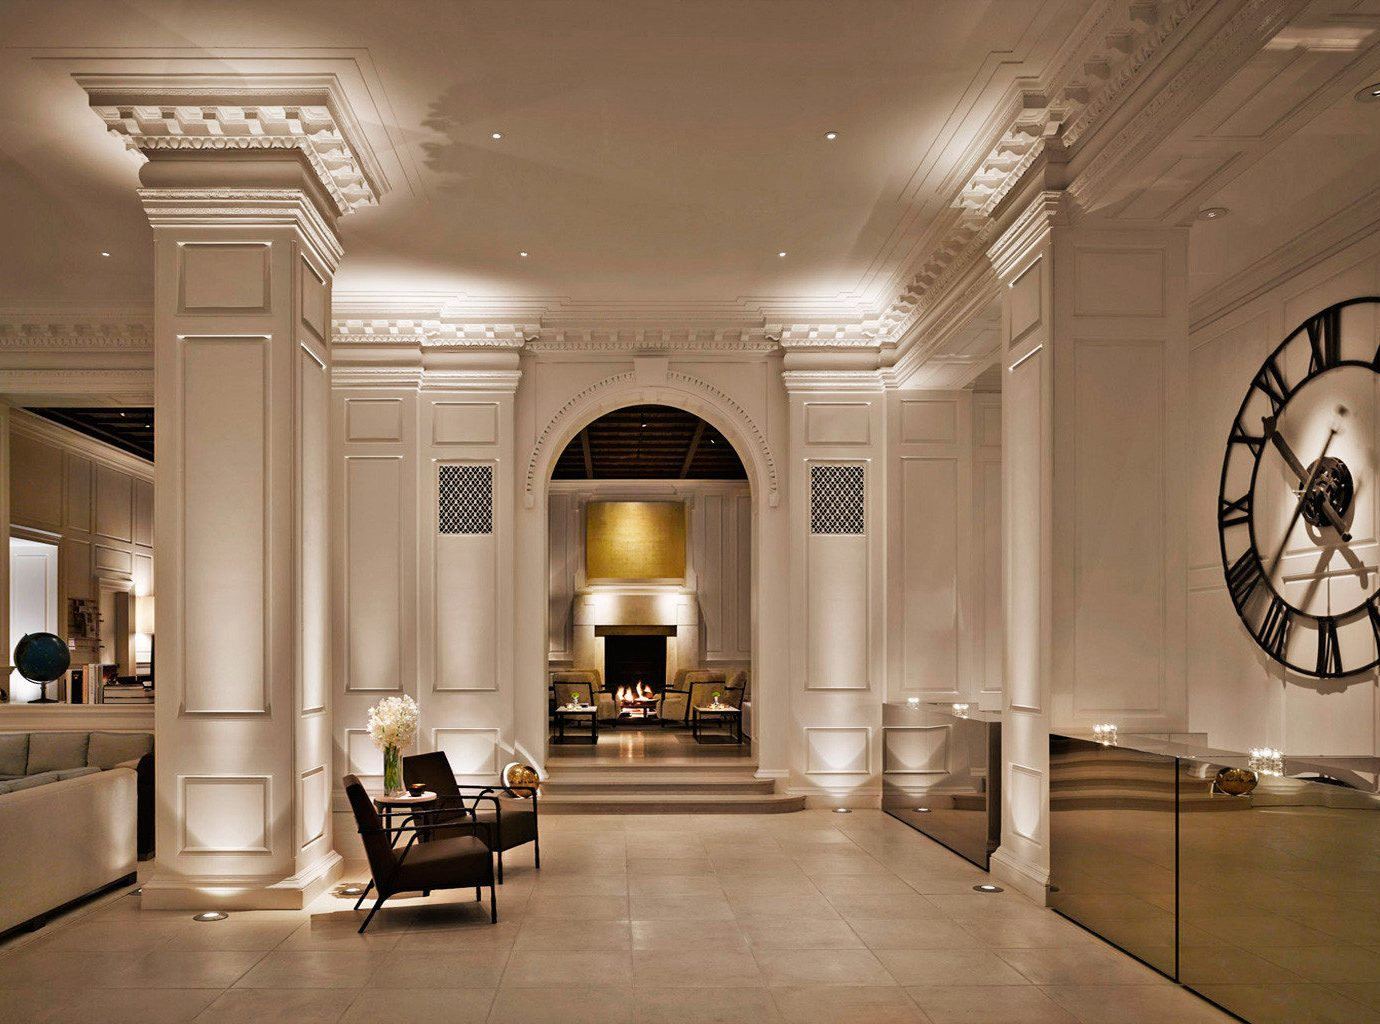 Boutique Historic Hotels Lobby Architecture hall tourist attraction home mansion art gallery living room ballroom